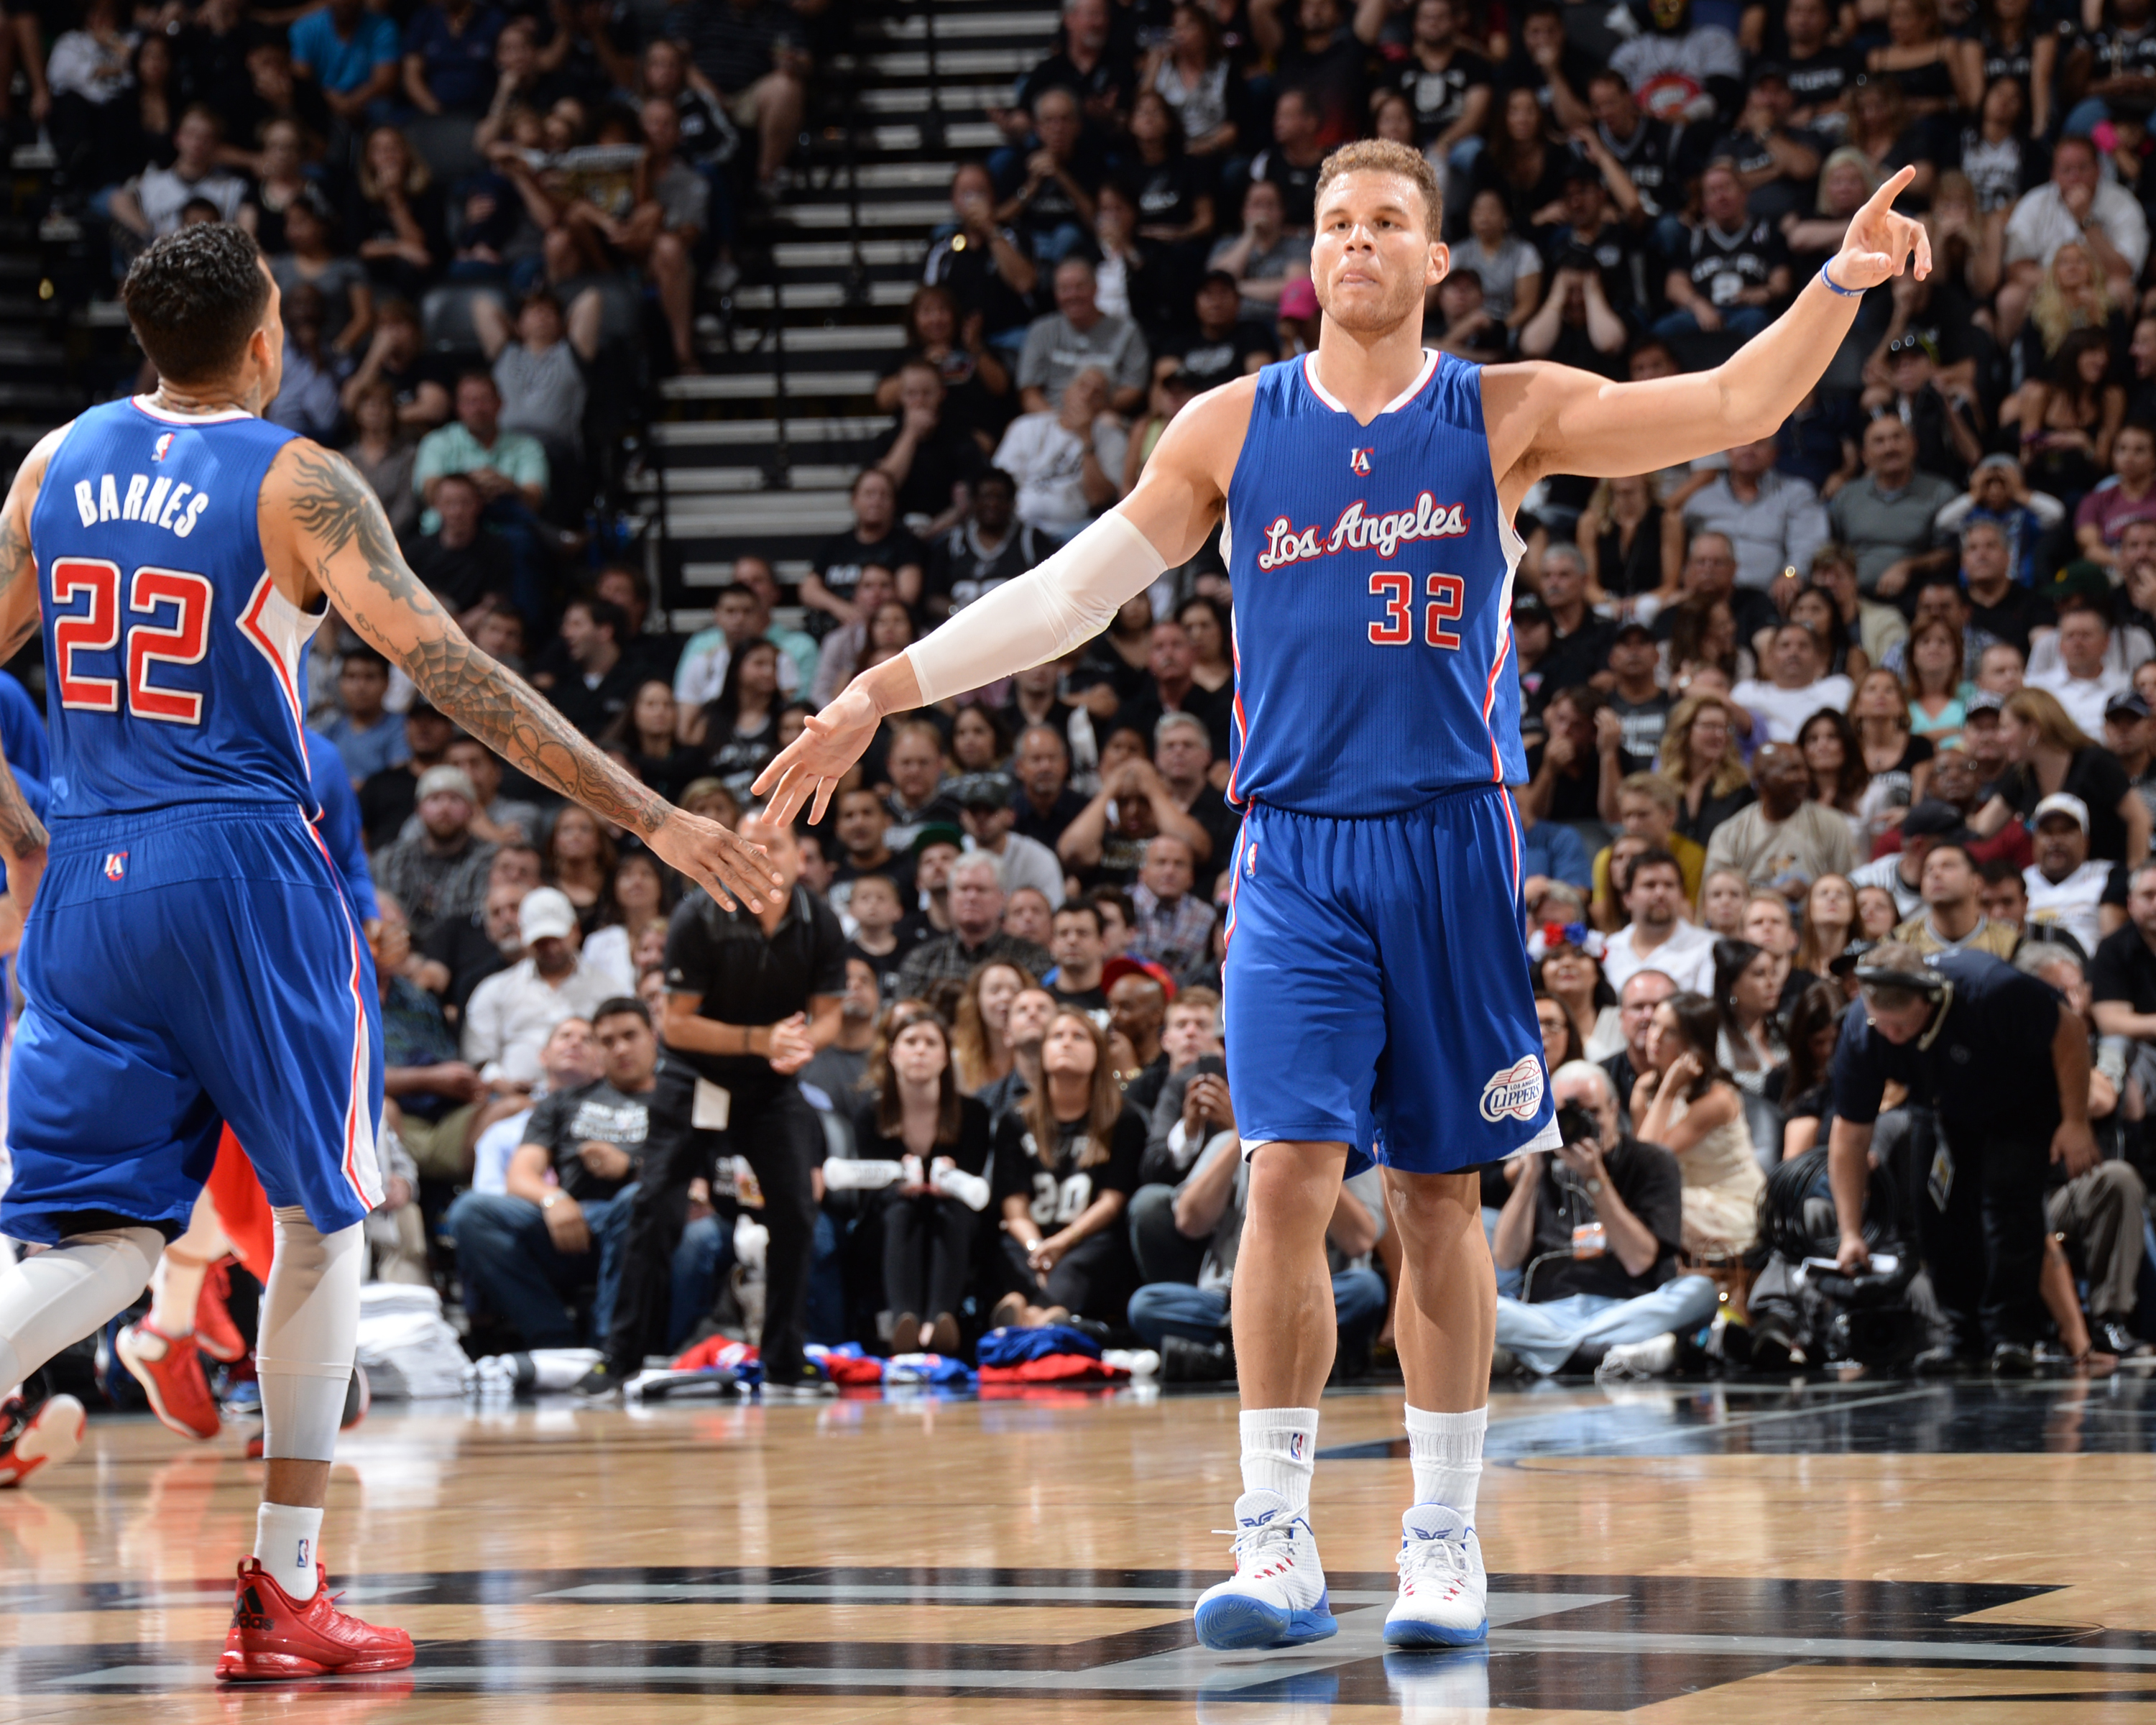 SAN ANTONIO, TEXAS - April 30: Blake Griffin #32 high fives teammates Matt Barnes #22 of the Los Angeles Clippers during Game Six of the Western Conference Quarterfinals against the San Antonio Spurs during the NBA Playoffs on April 30, 2015 at Barclays C